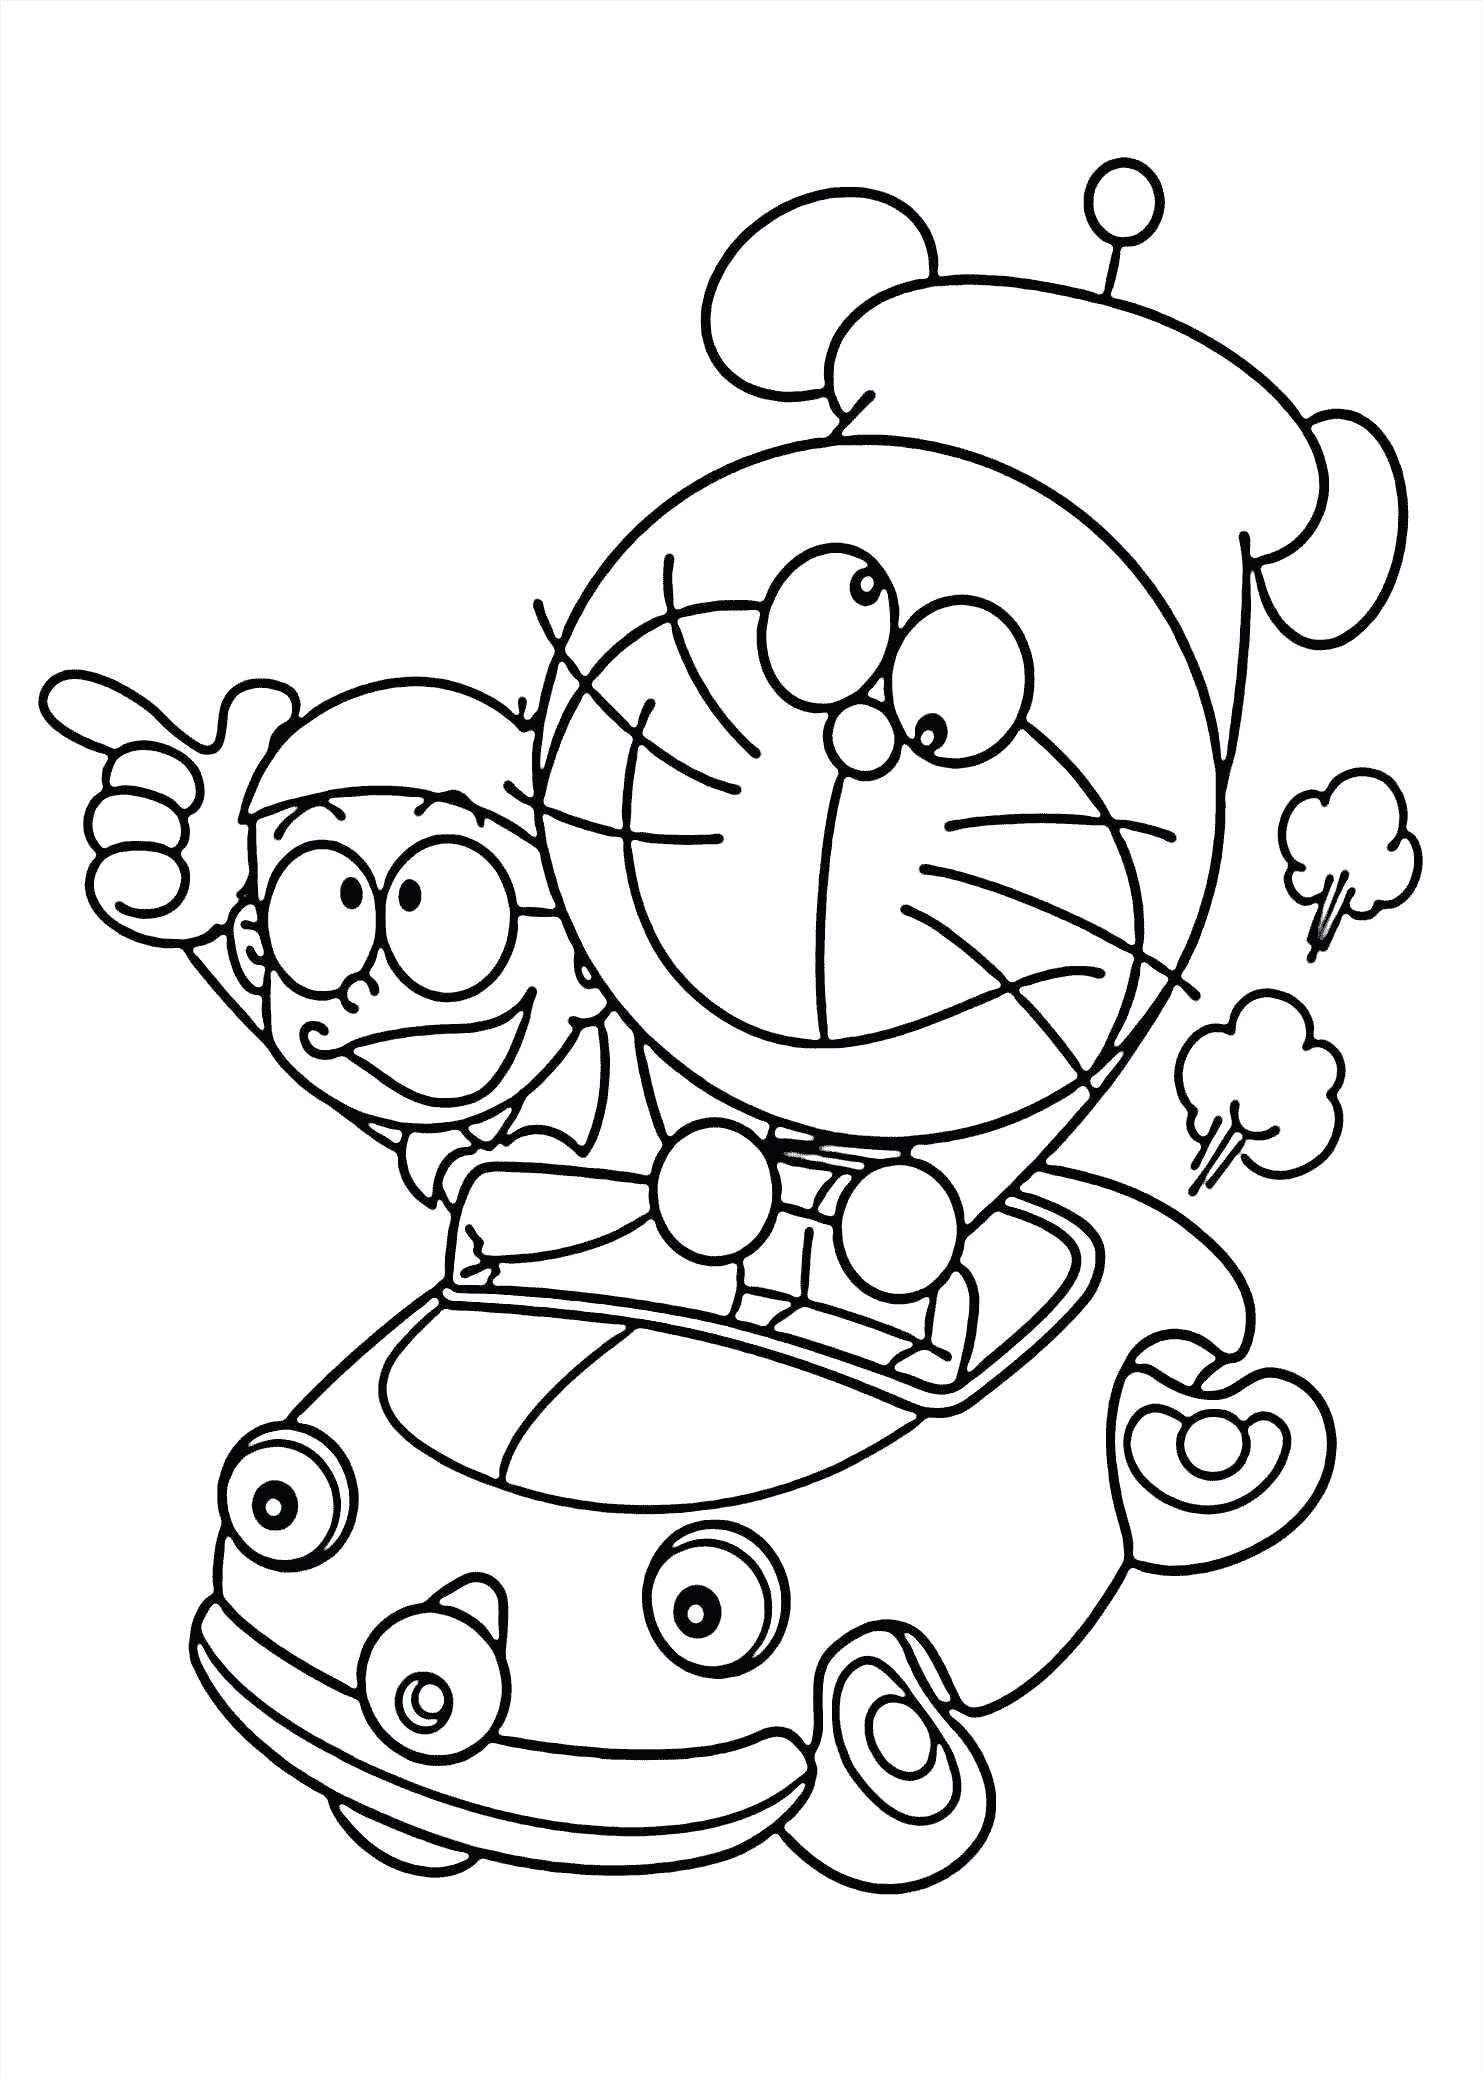 Coloring Books For Kids Free Coloring Pages Coloring Book Kids Games Free For Girls Cool Coloring Pages Bear Coloring Pages Valentine Coloring Pages